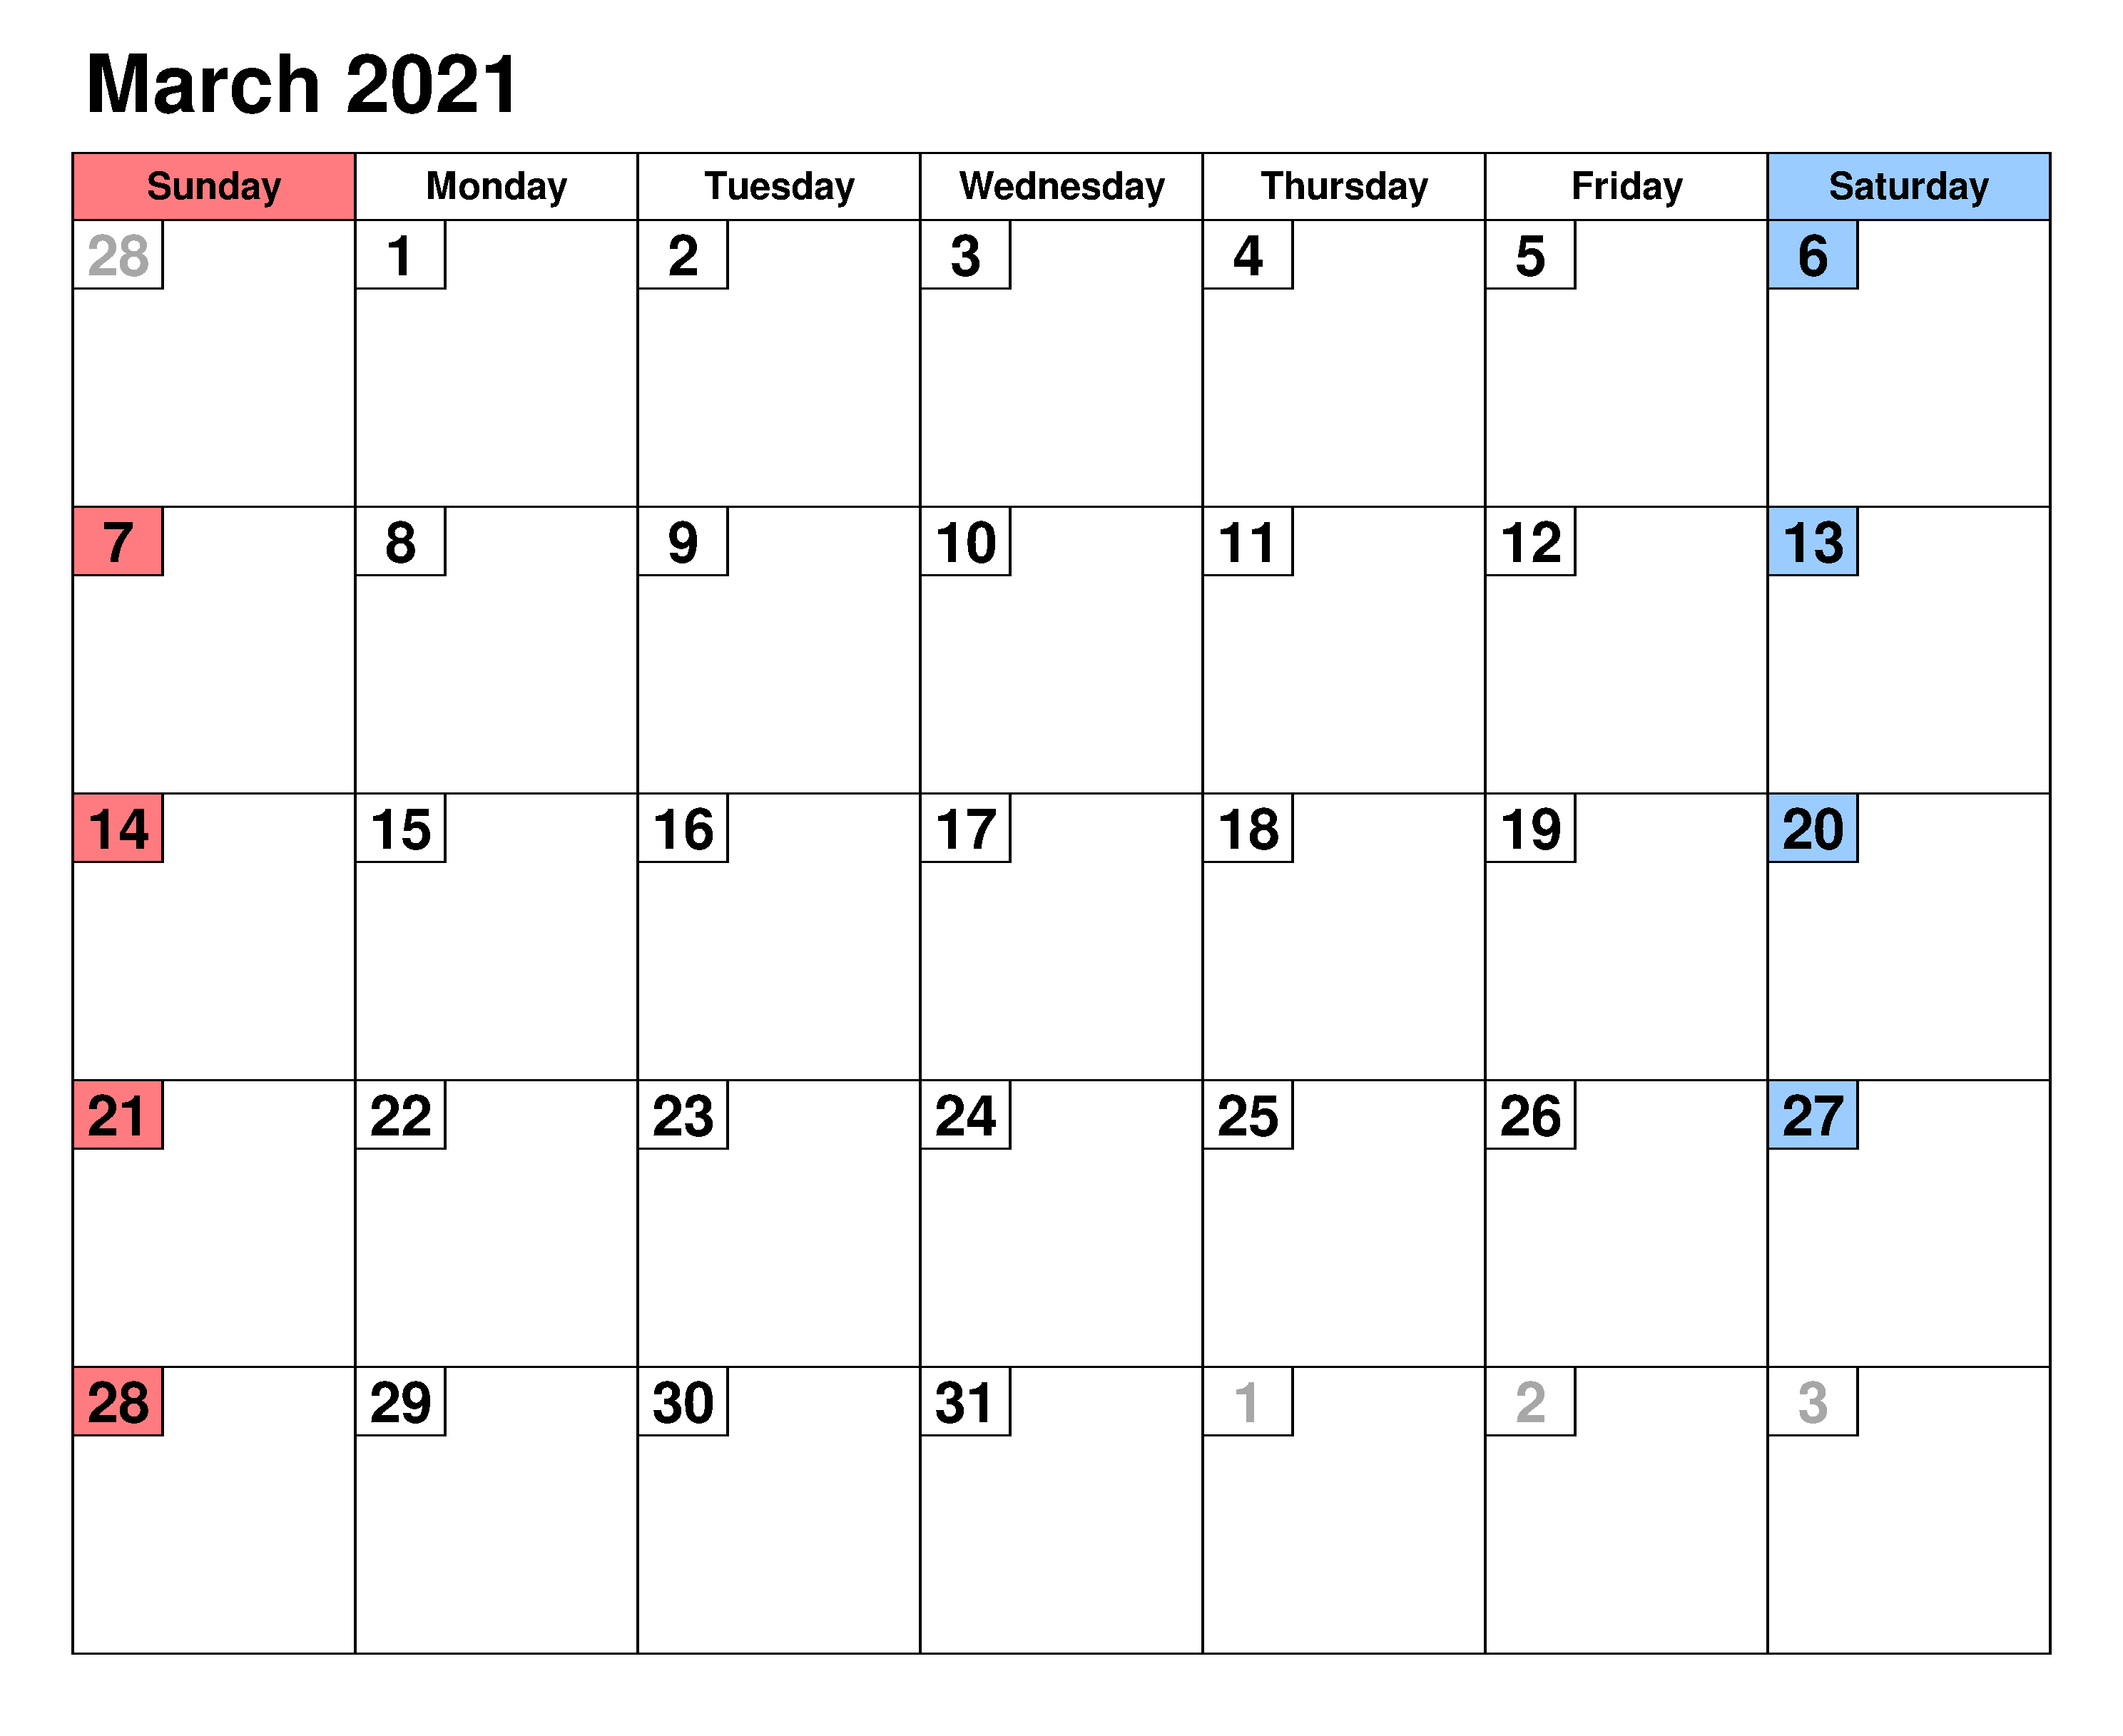 Printable March 2021 Calendar With Holidays - Zhudamodel Pertaining To March Holidays 2021 Calendars